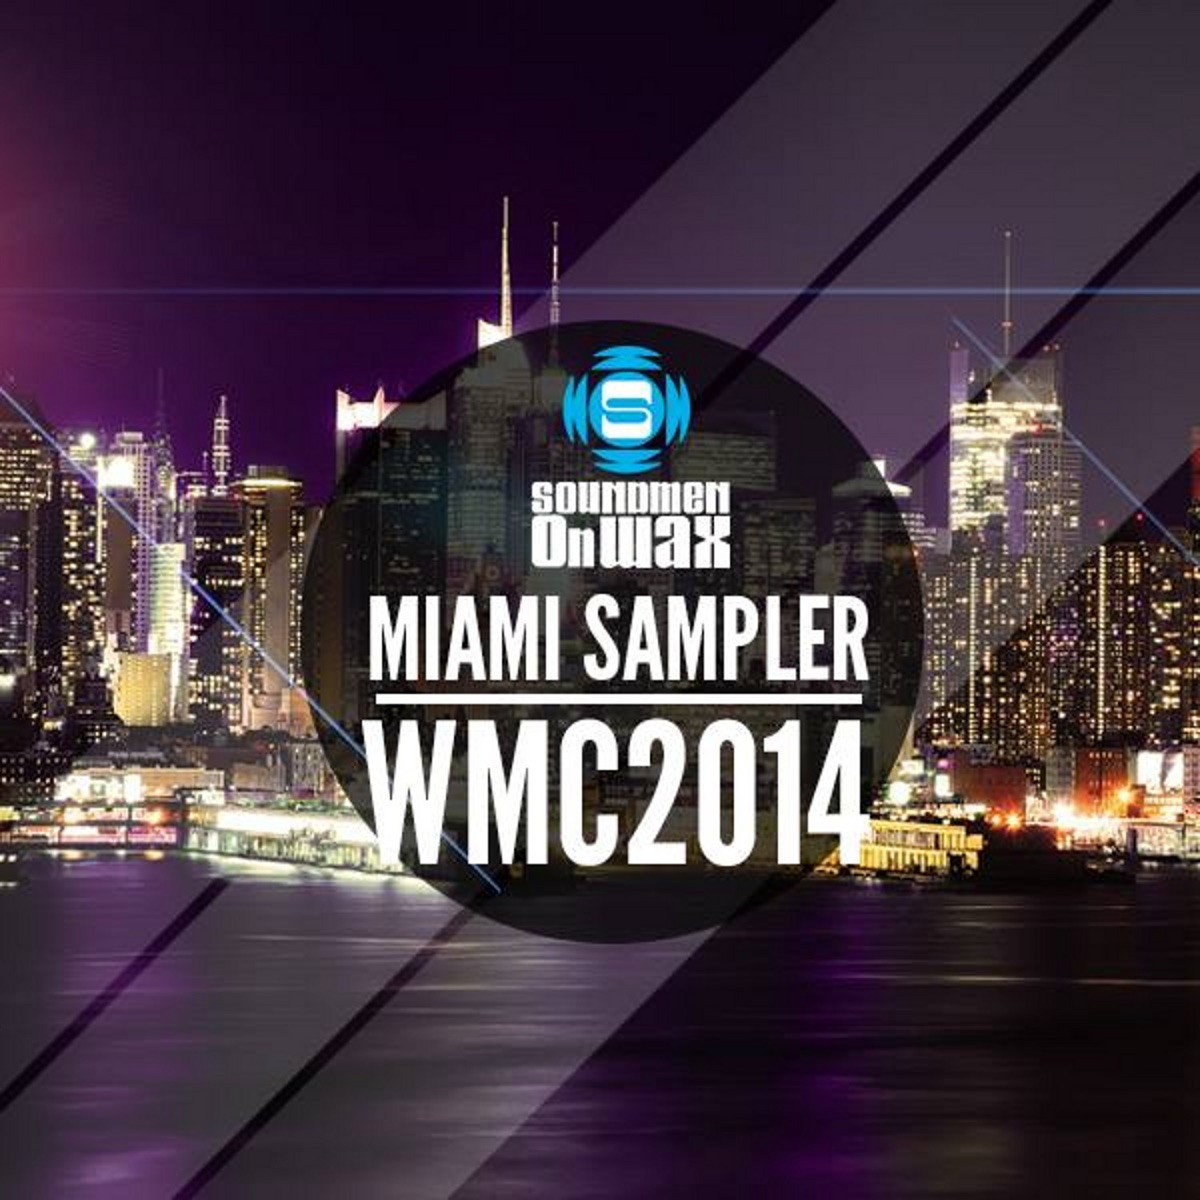 Miami Sampler WMC 2014 Various Artists CD cover